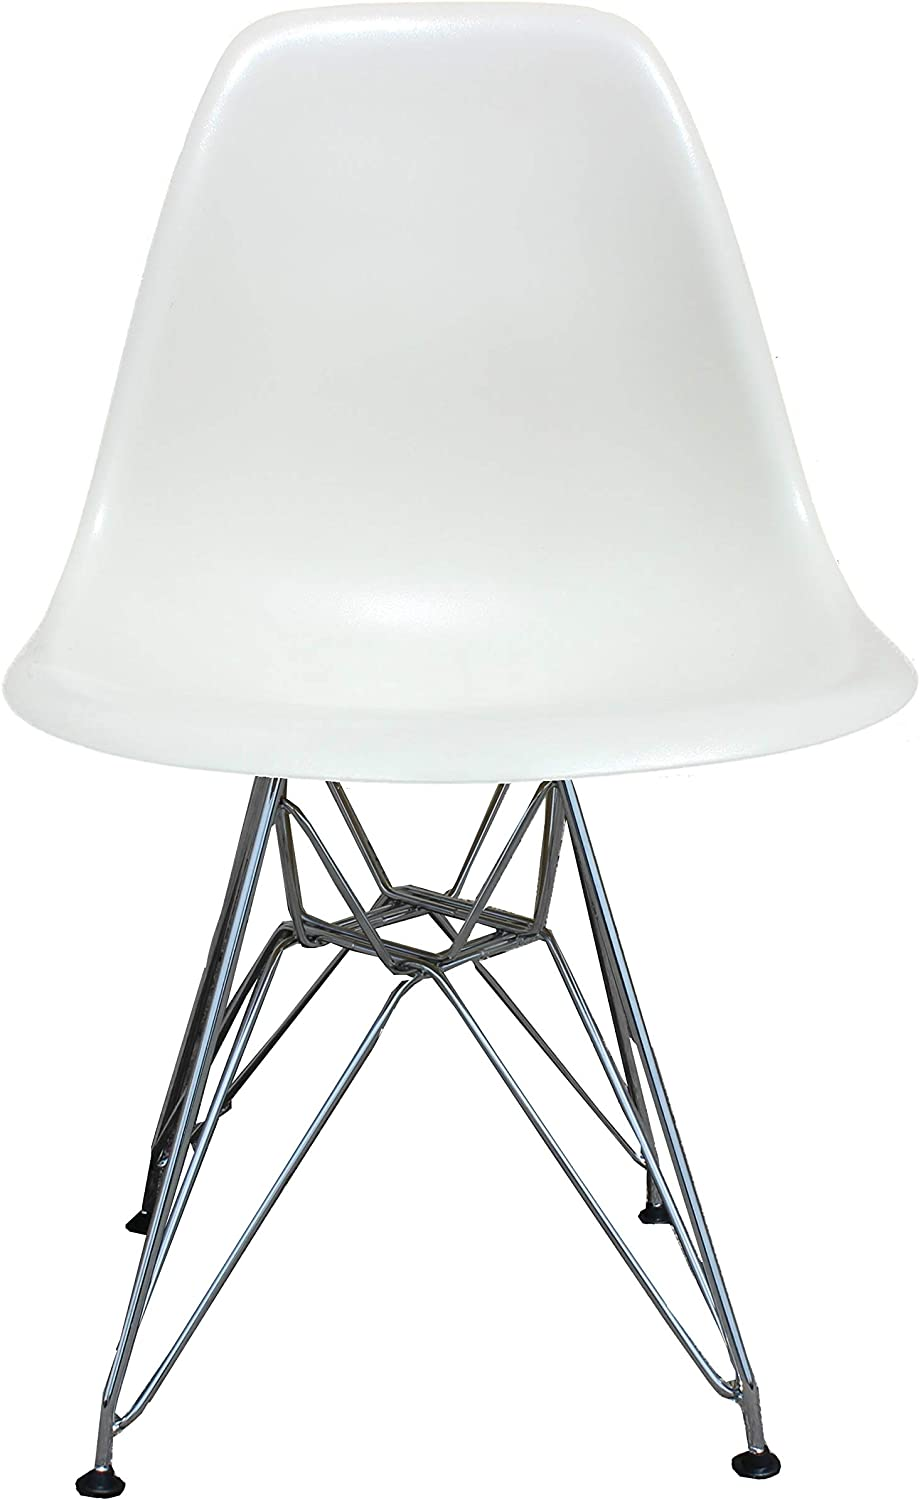 silver Import PDI-PC-016 Eames Style Side Chair with Chrome Legs Eiffel Dining Room Chair, White